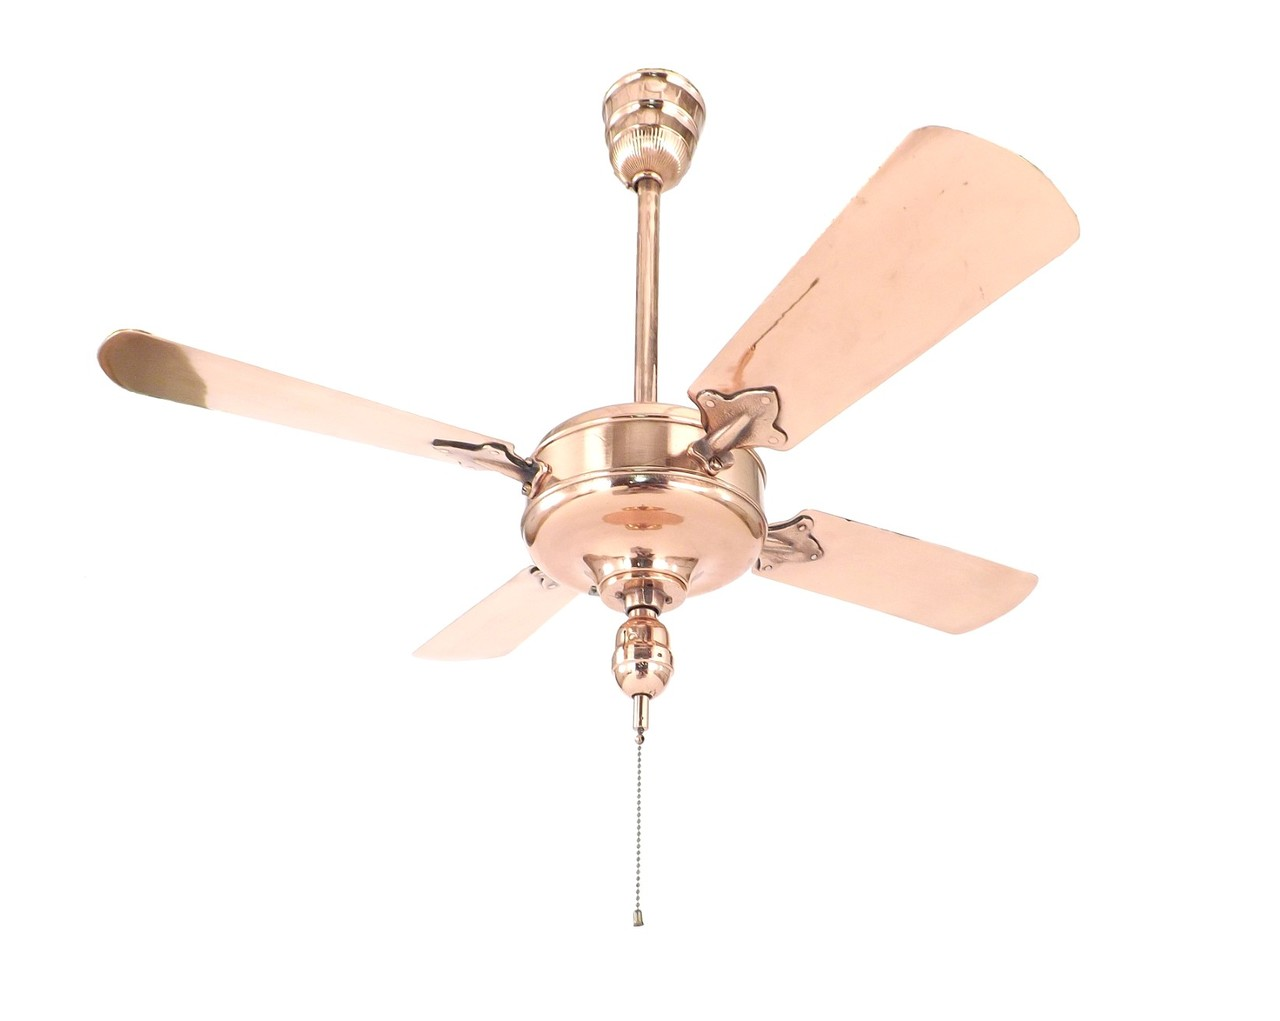 Circa 1920's Westinghouse Baby Sidewinder Ceiling Fan Restored Copper Finish